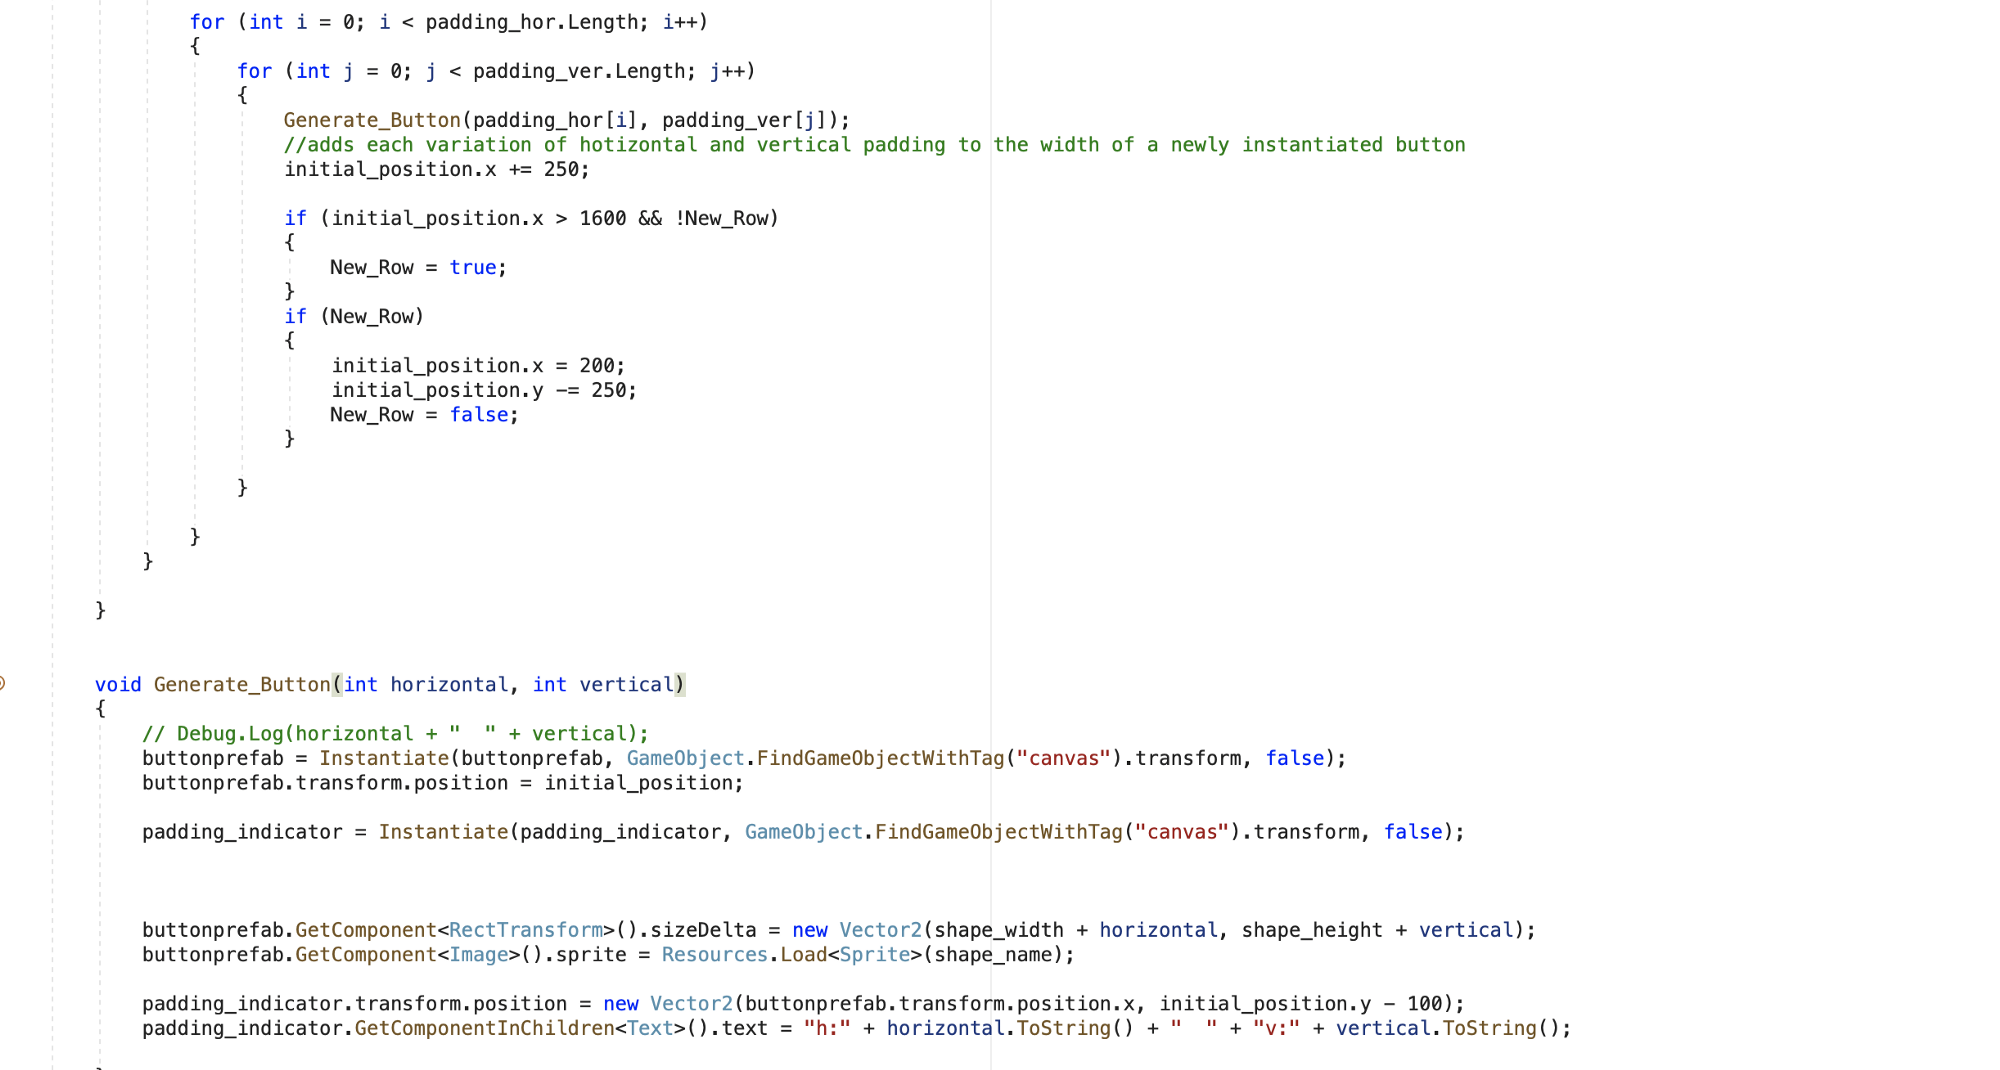 Screenshot of code from Visual Studio. It includes 2 for loops for padding values and a function to render buttons